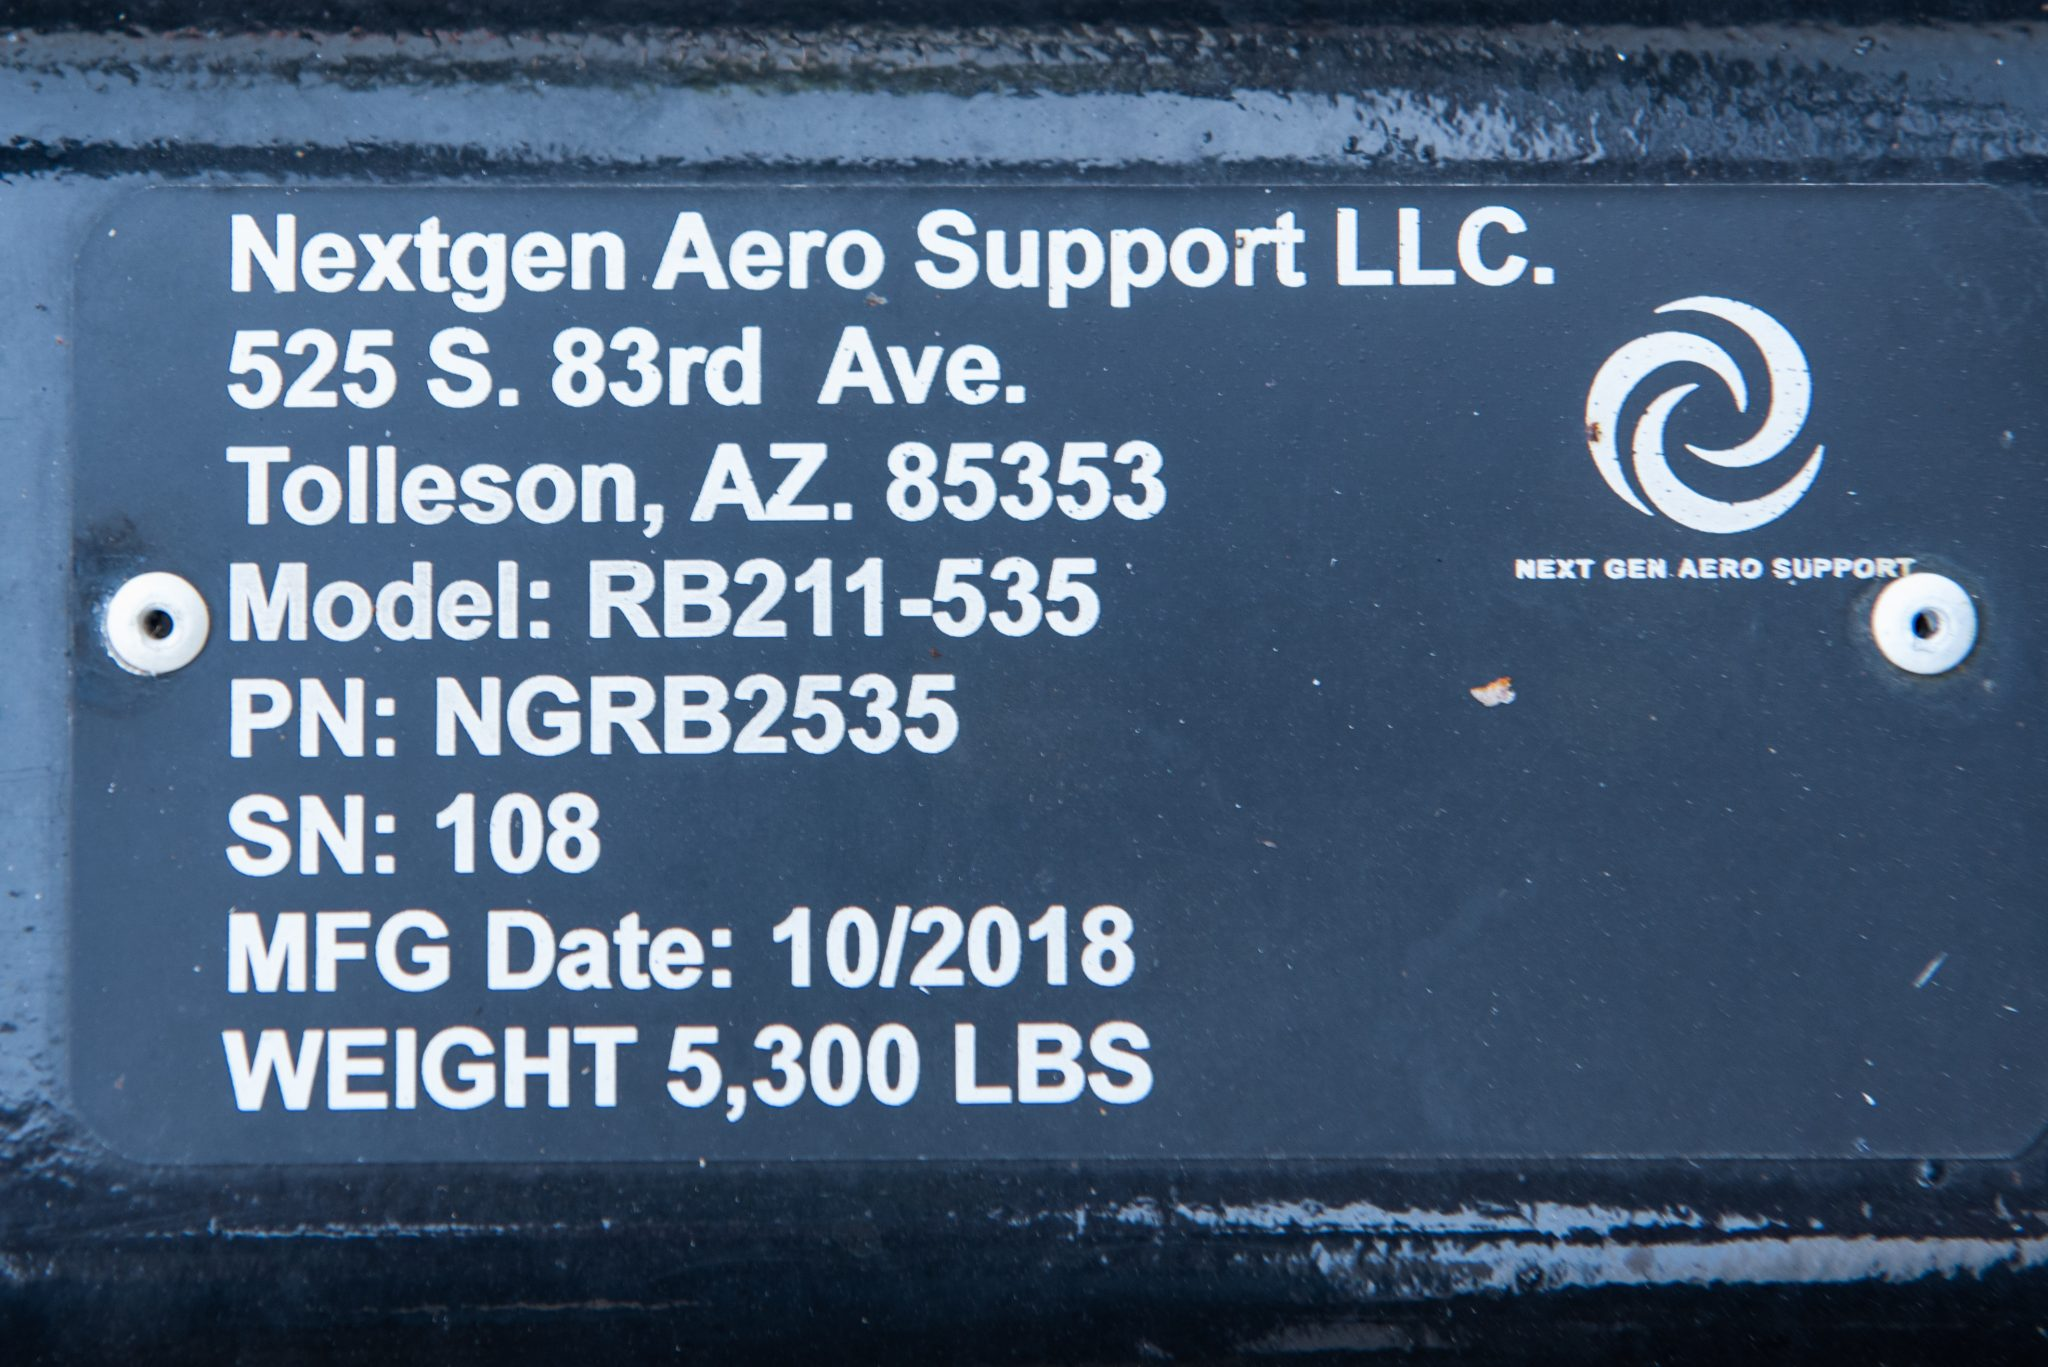 RB211-535 Nextgen serial number